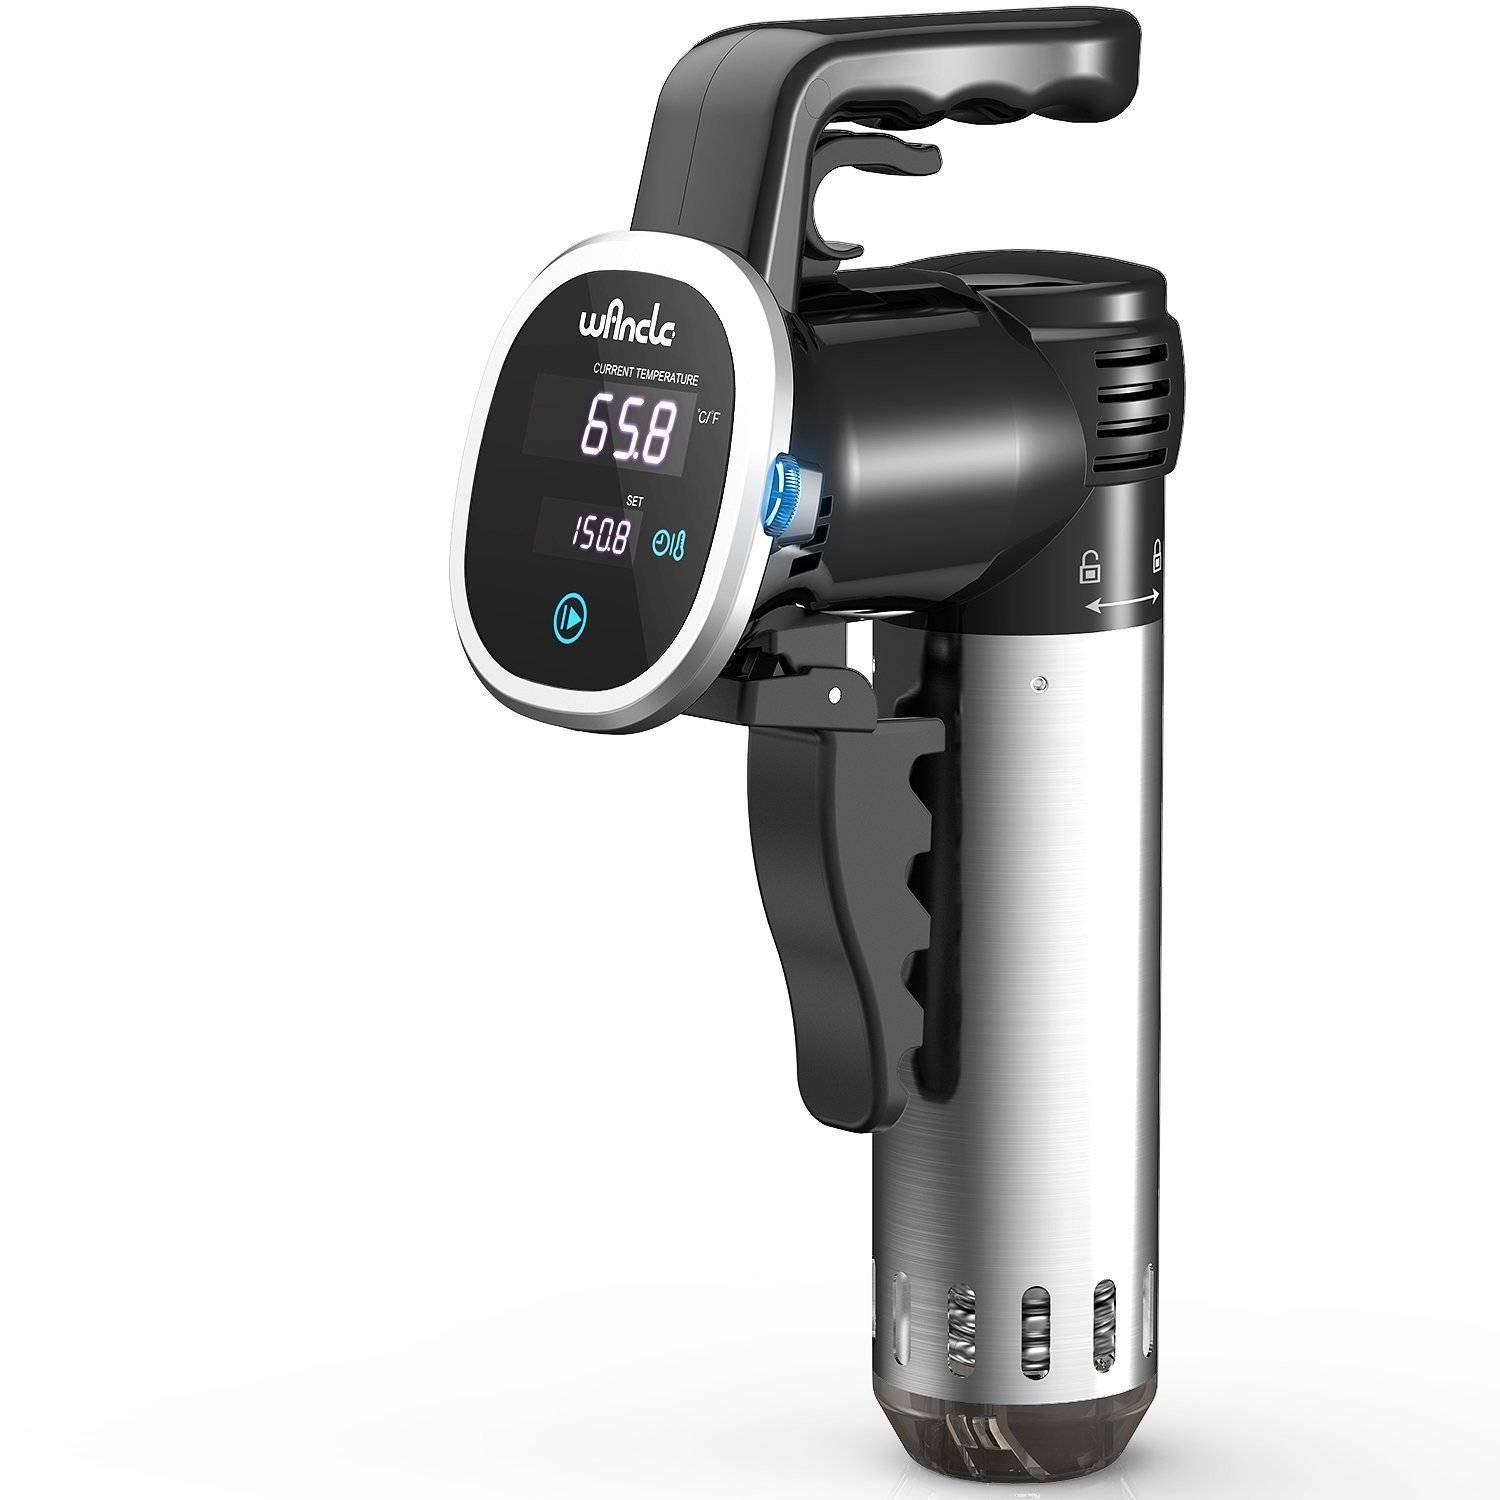 Independence Day Sale: Wancle SVC001 Sous Vide Cooker